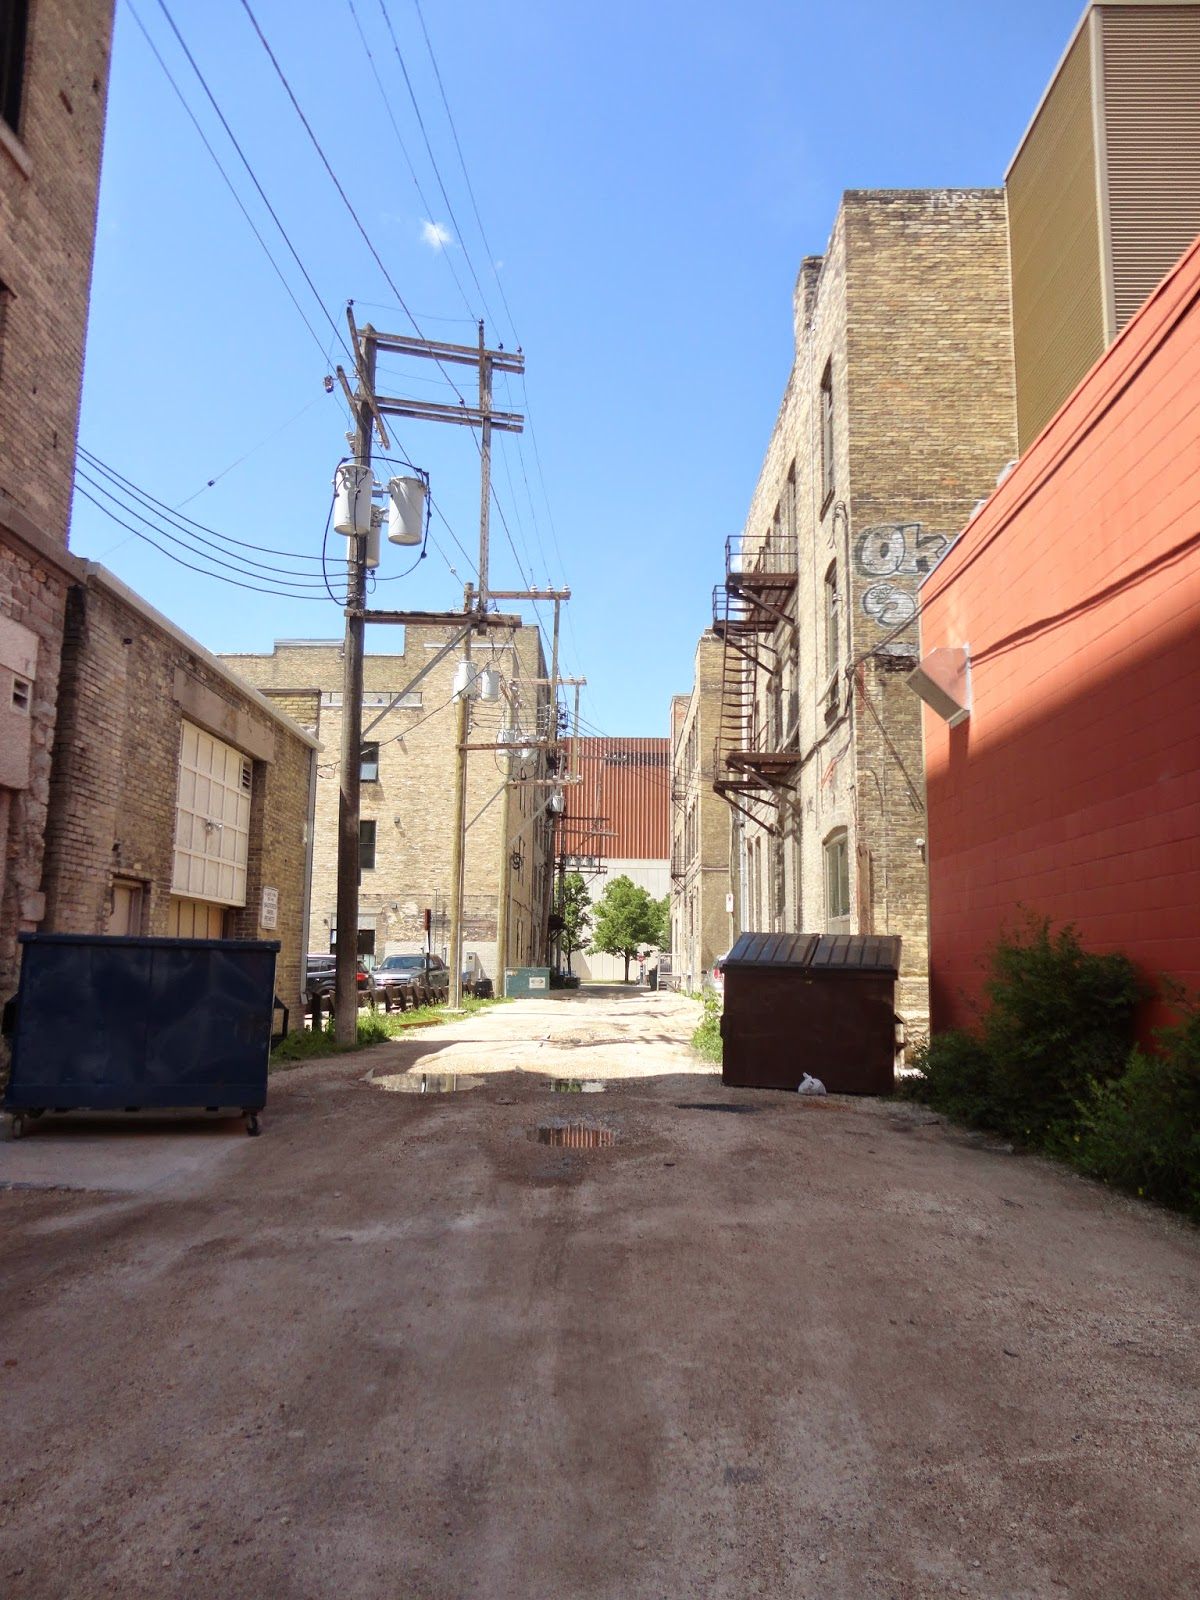 Hell's Alley - Parallel to Market and James Avenues